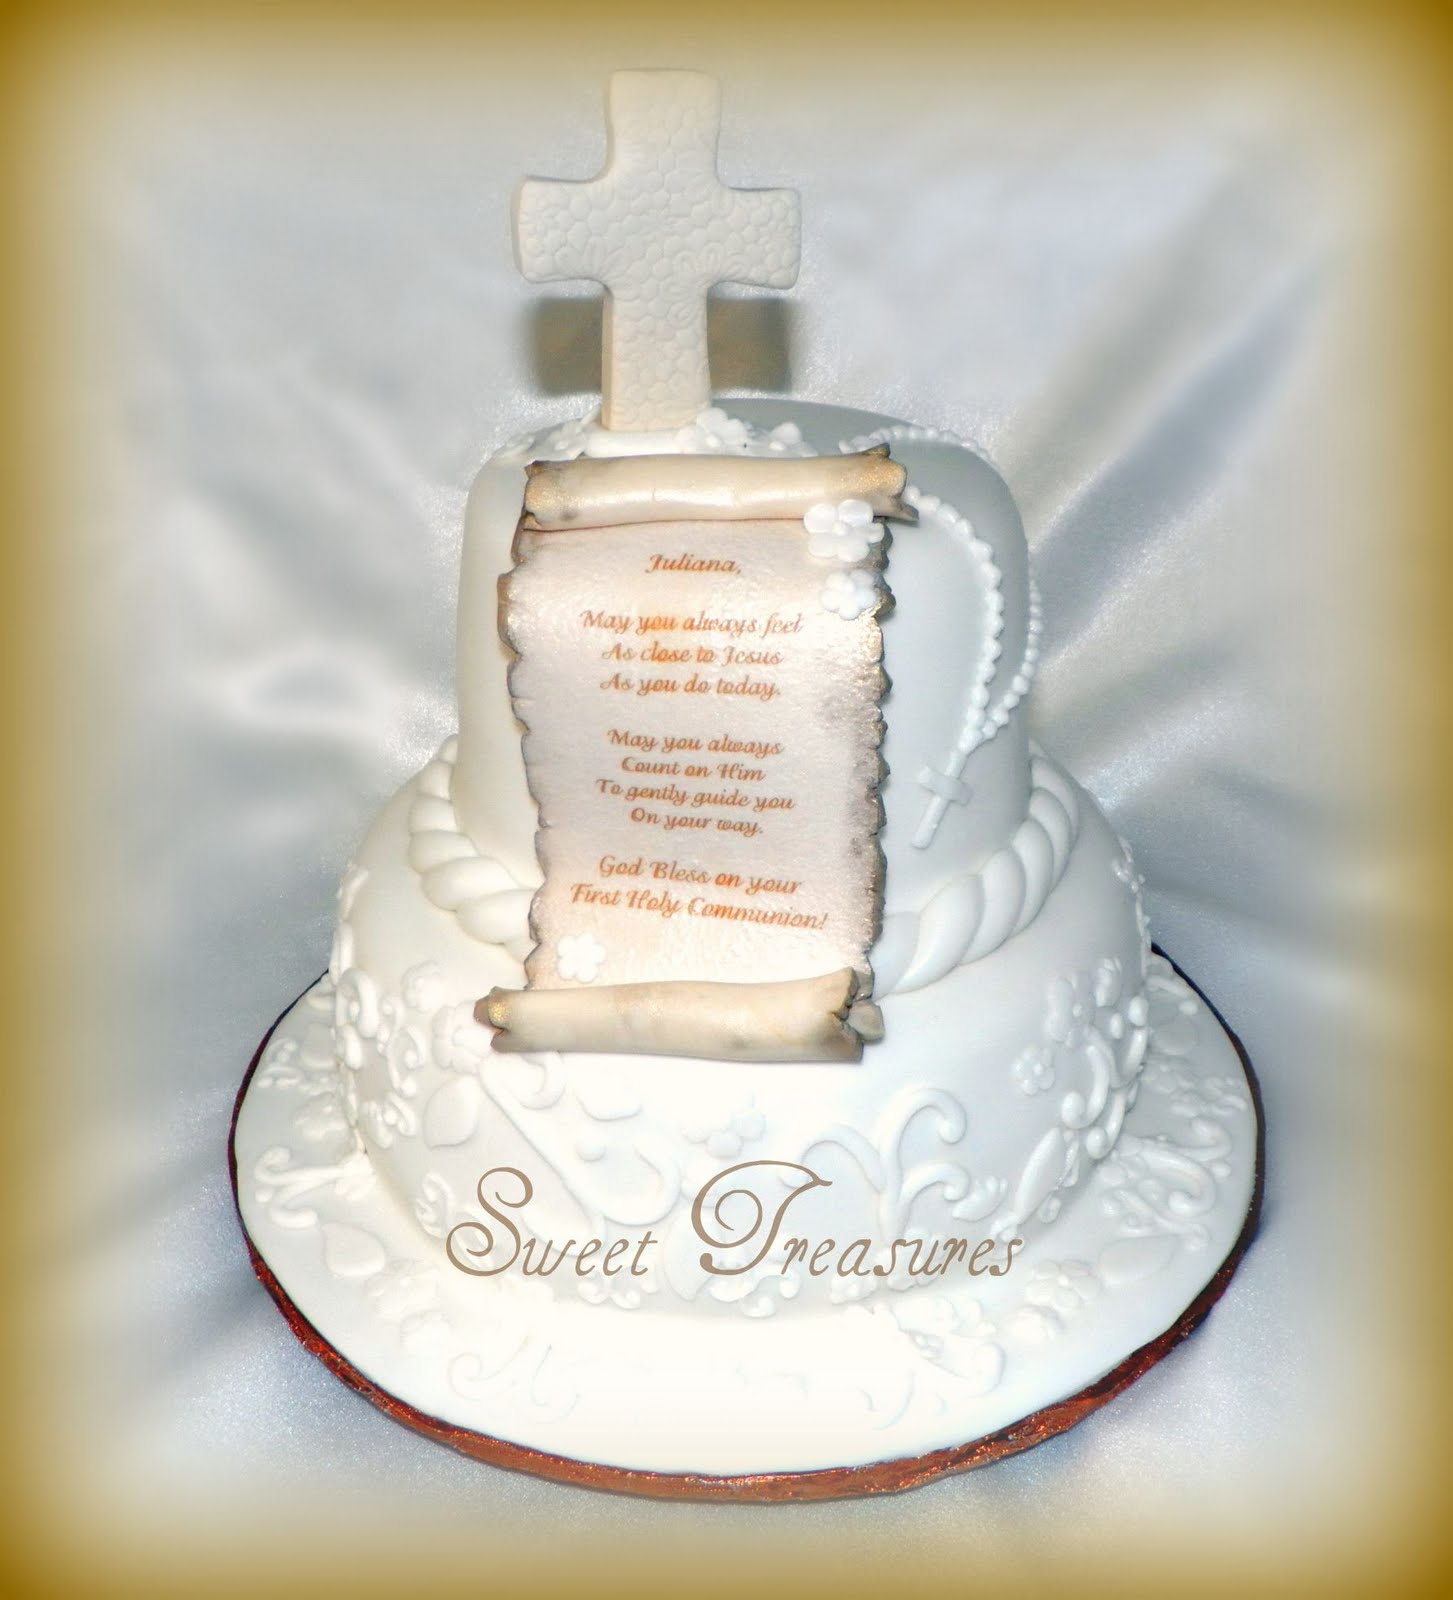 First holy communion cakes decorations ideas 84631 first h for 1st holy communion cake decoration ideas